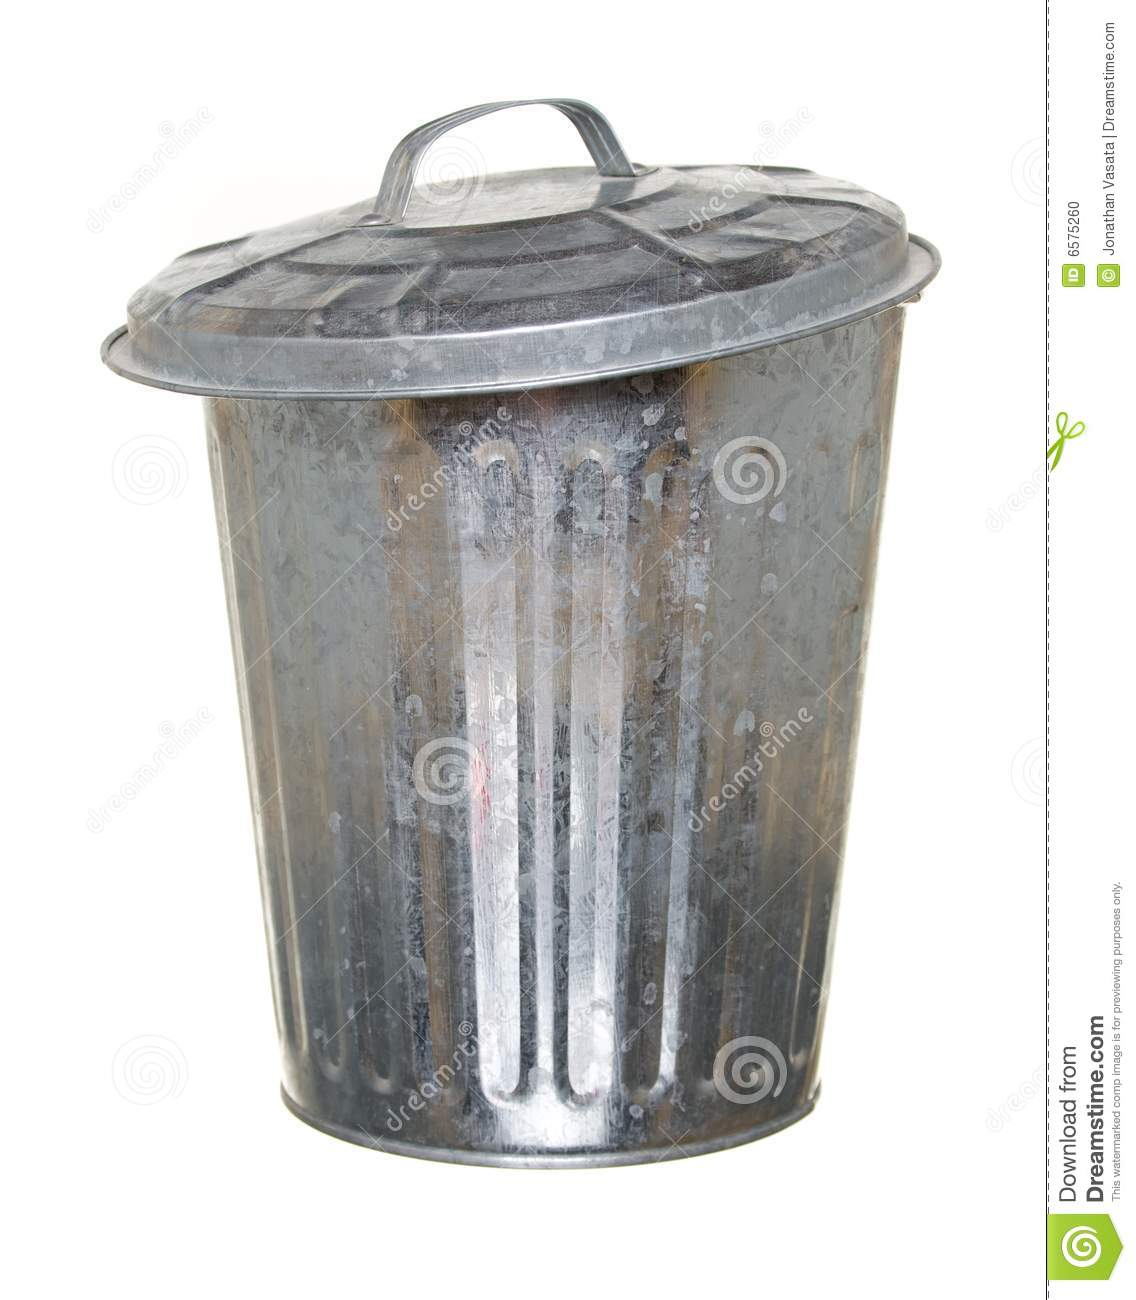 Aluminum Trash Cans With Lids : Trash can lid ajar forward stock photo image